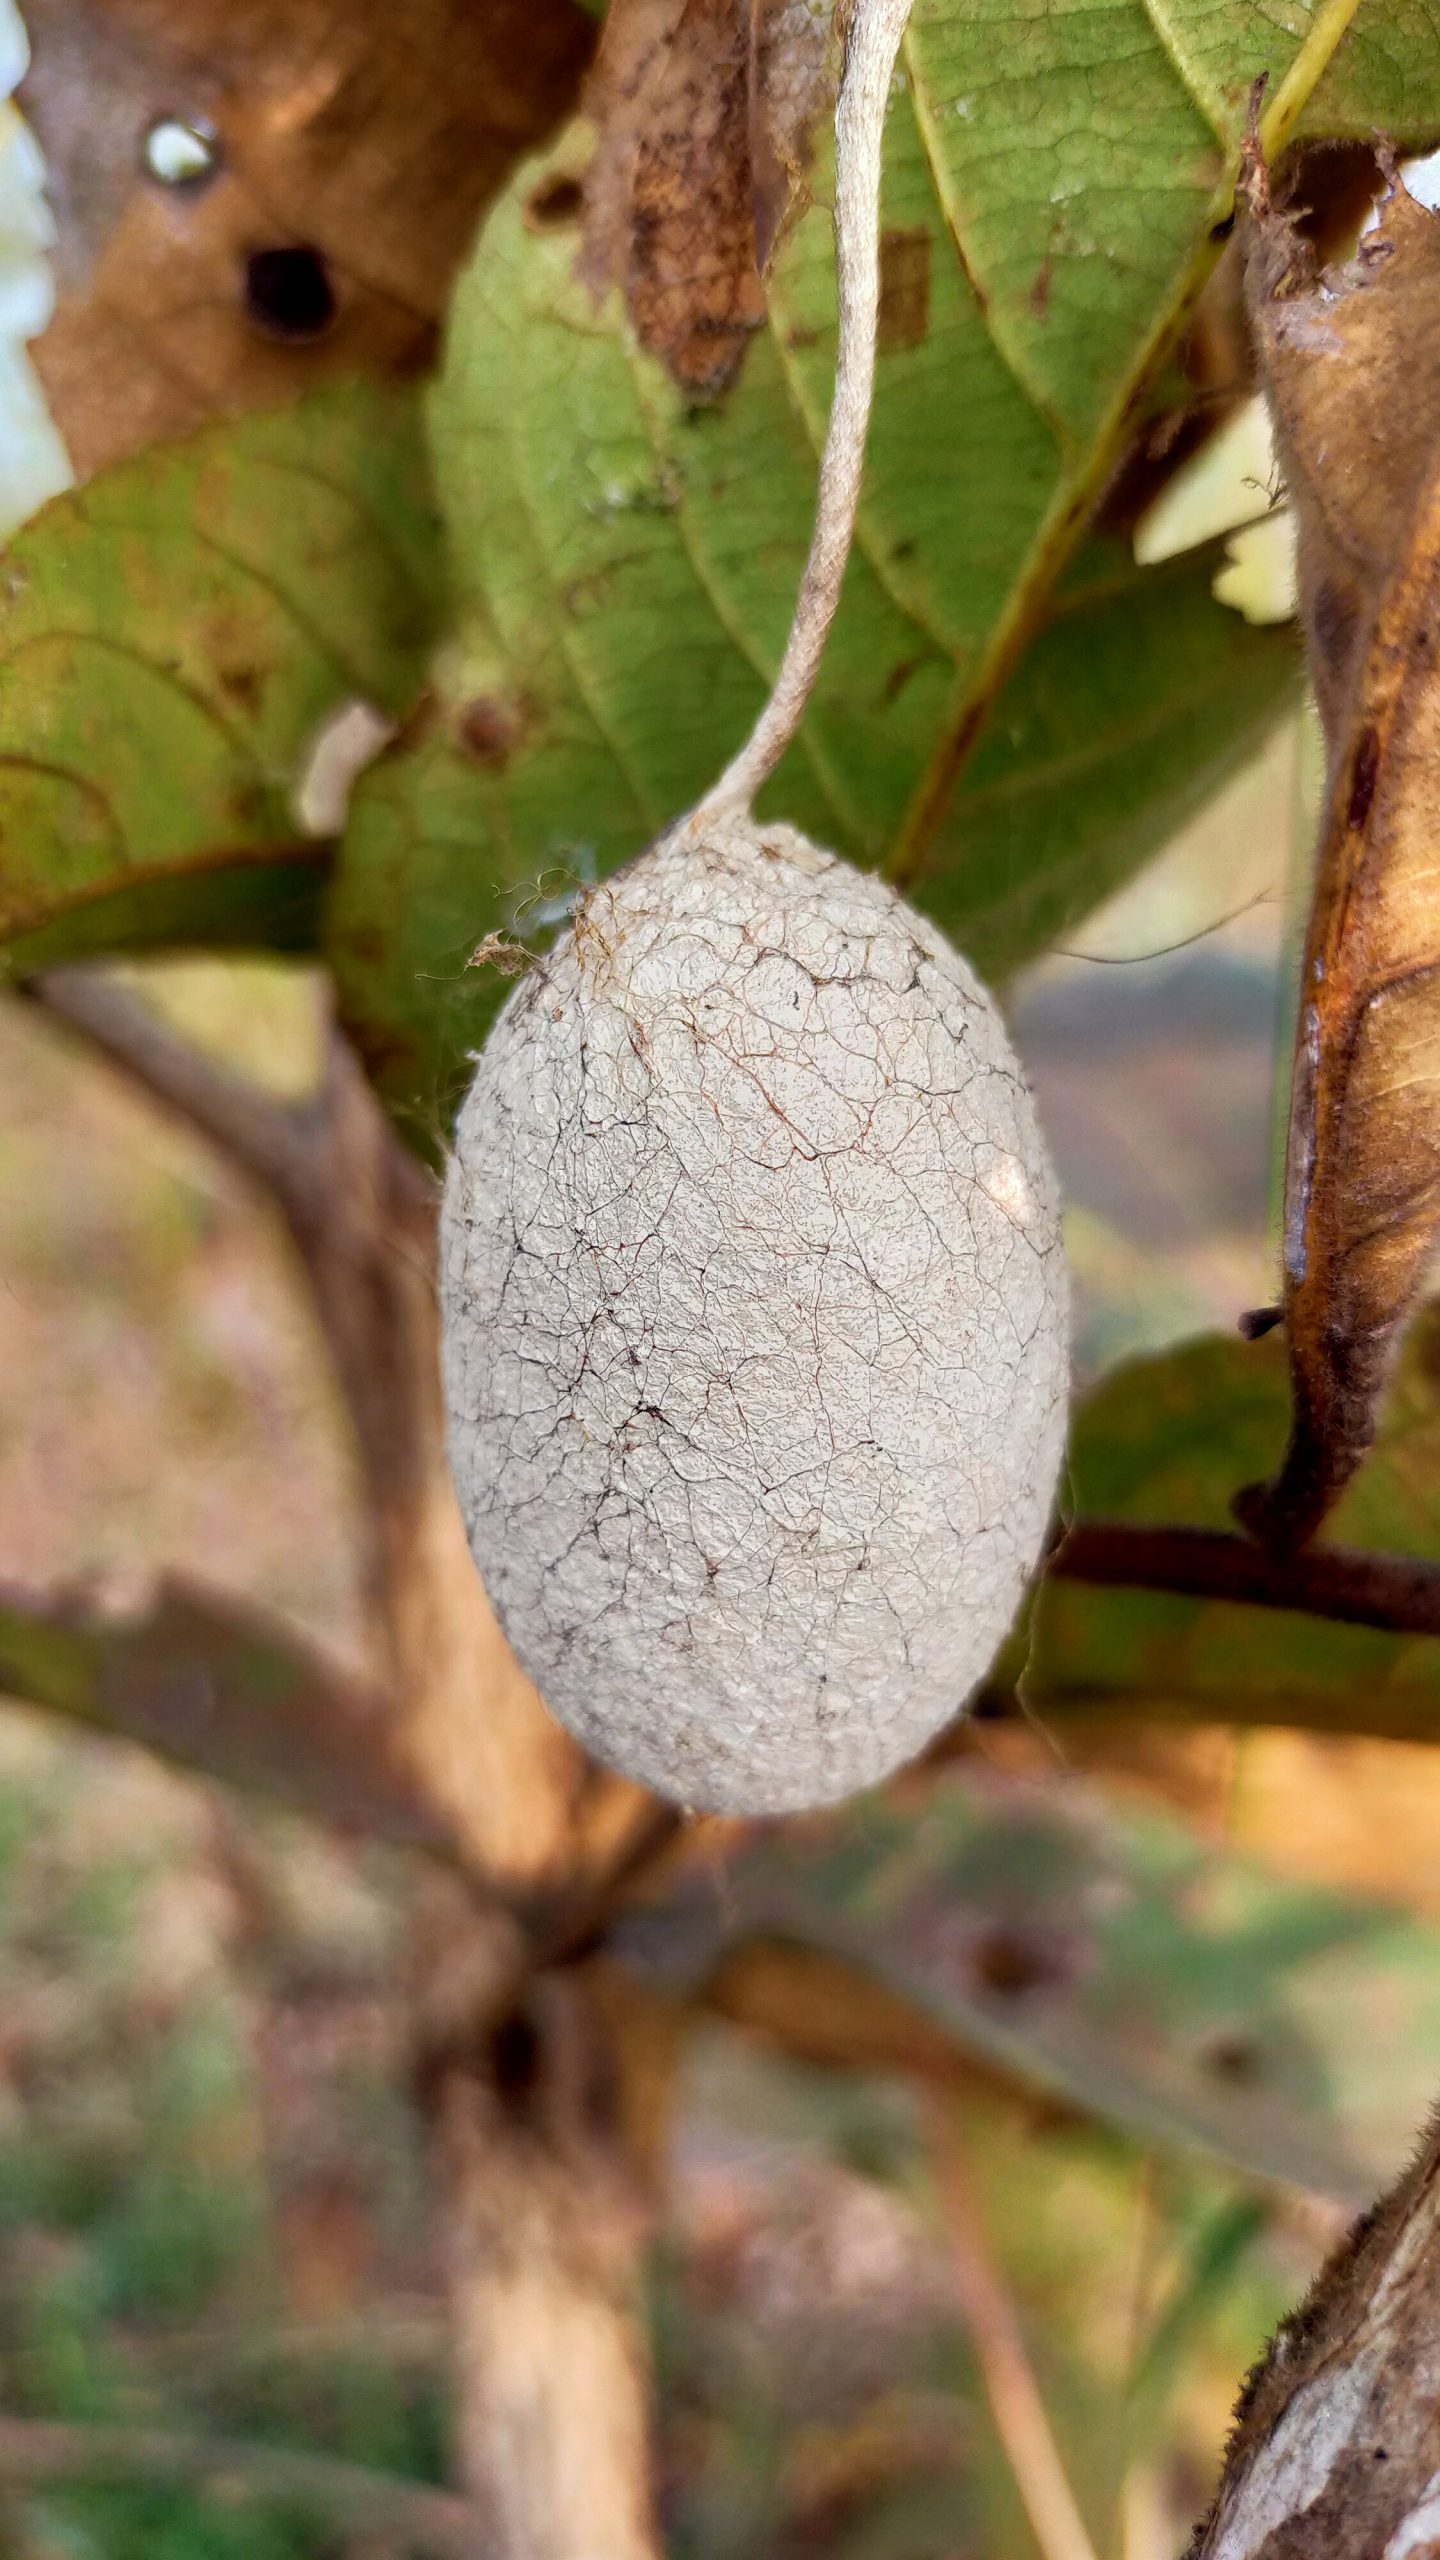 A cocoon made by silkworm